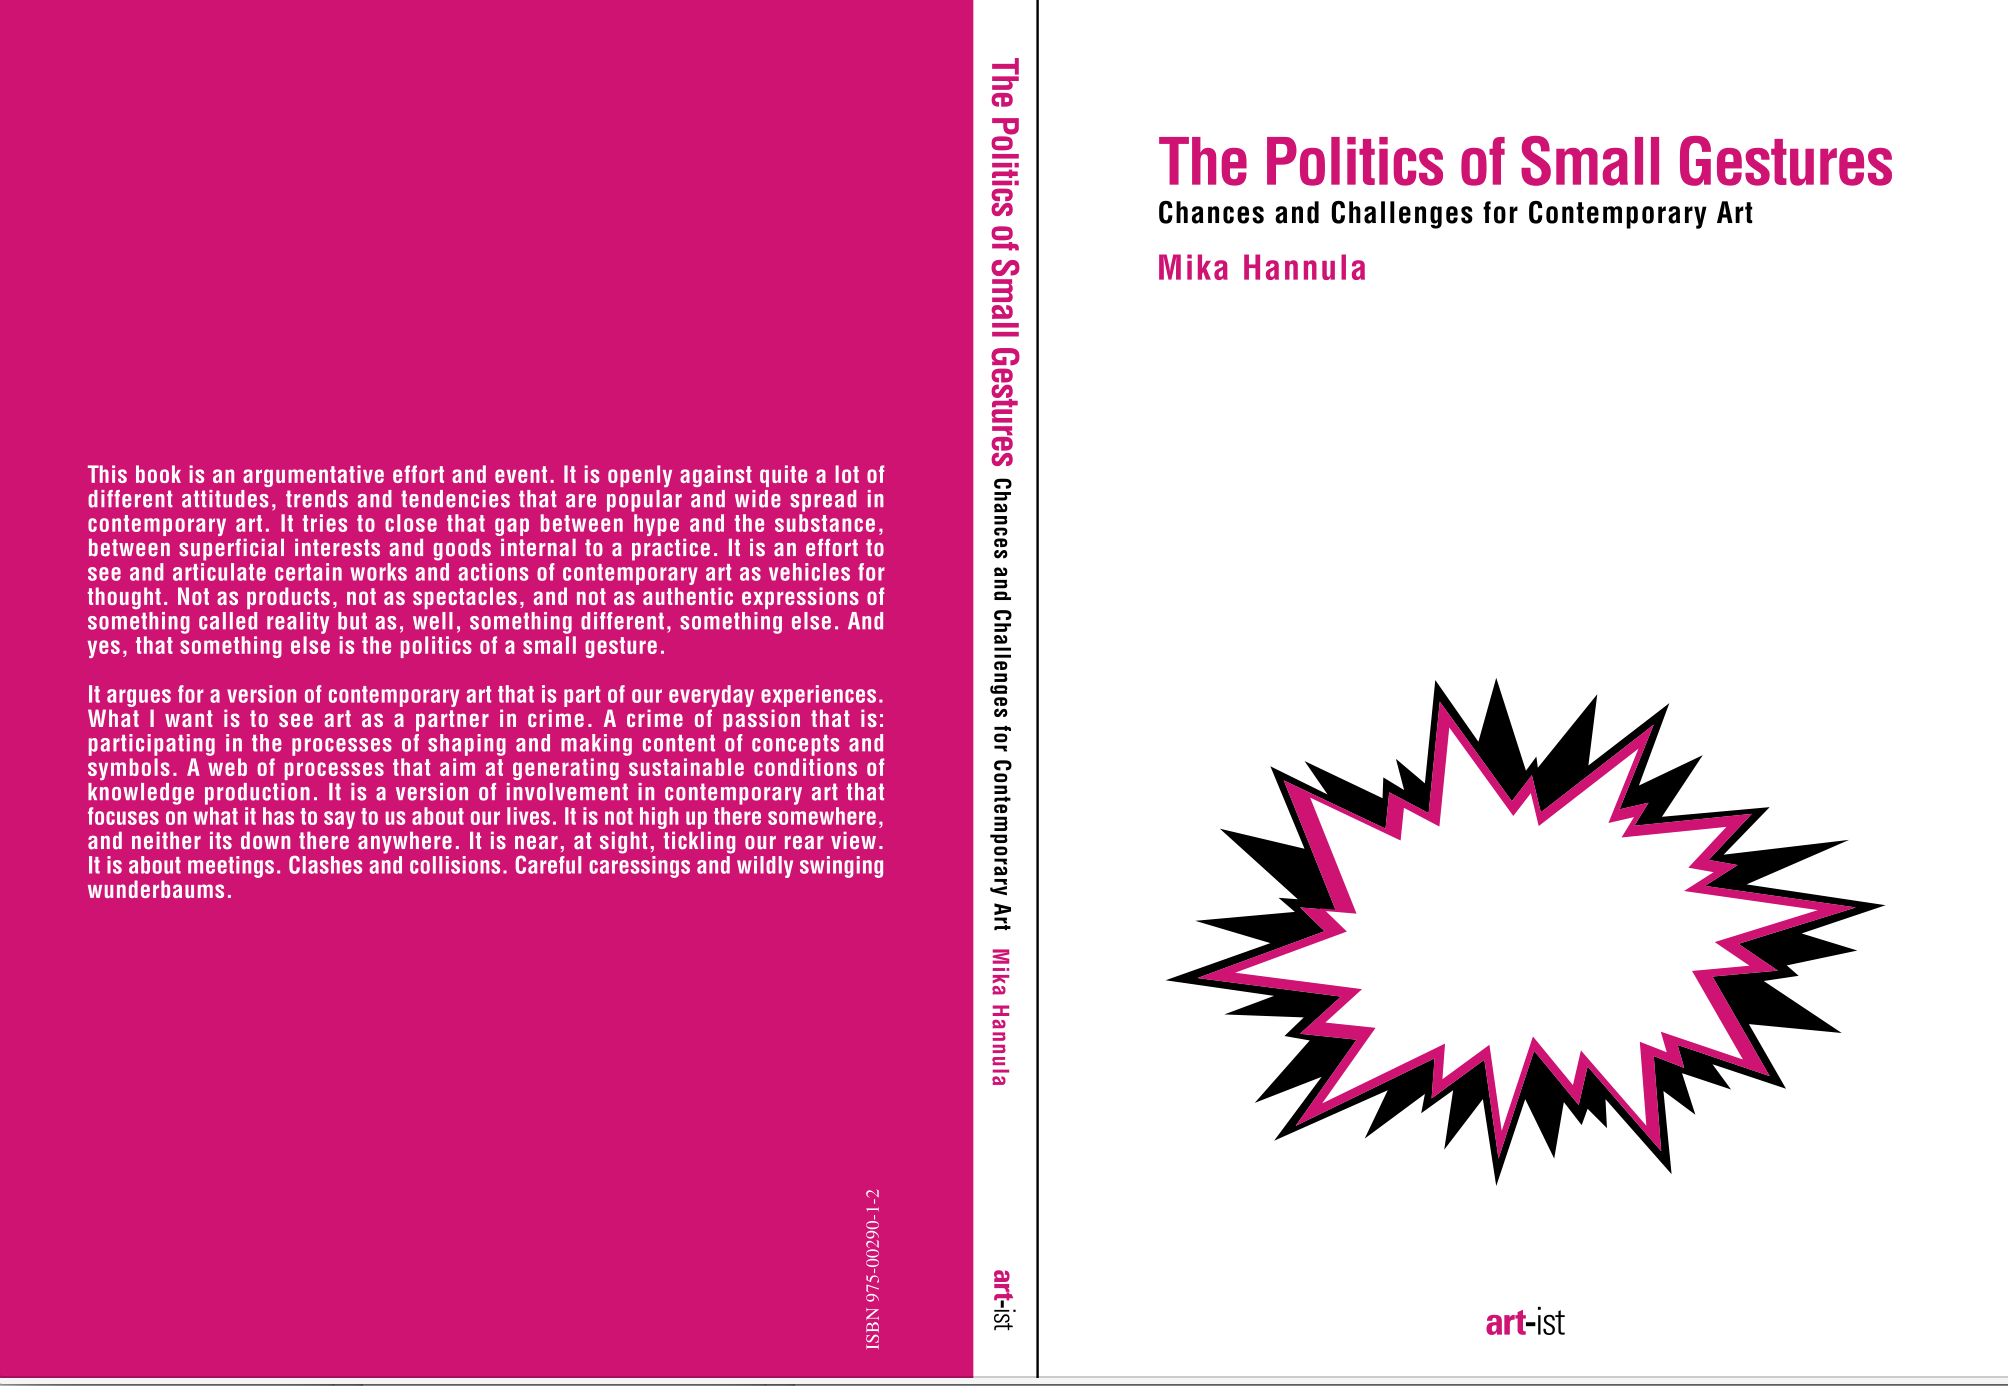 The Politics of Small Gestures: Chances and Challenges for Contemporary Art